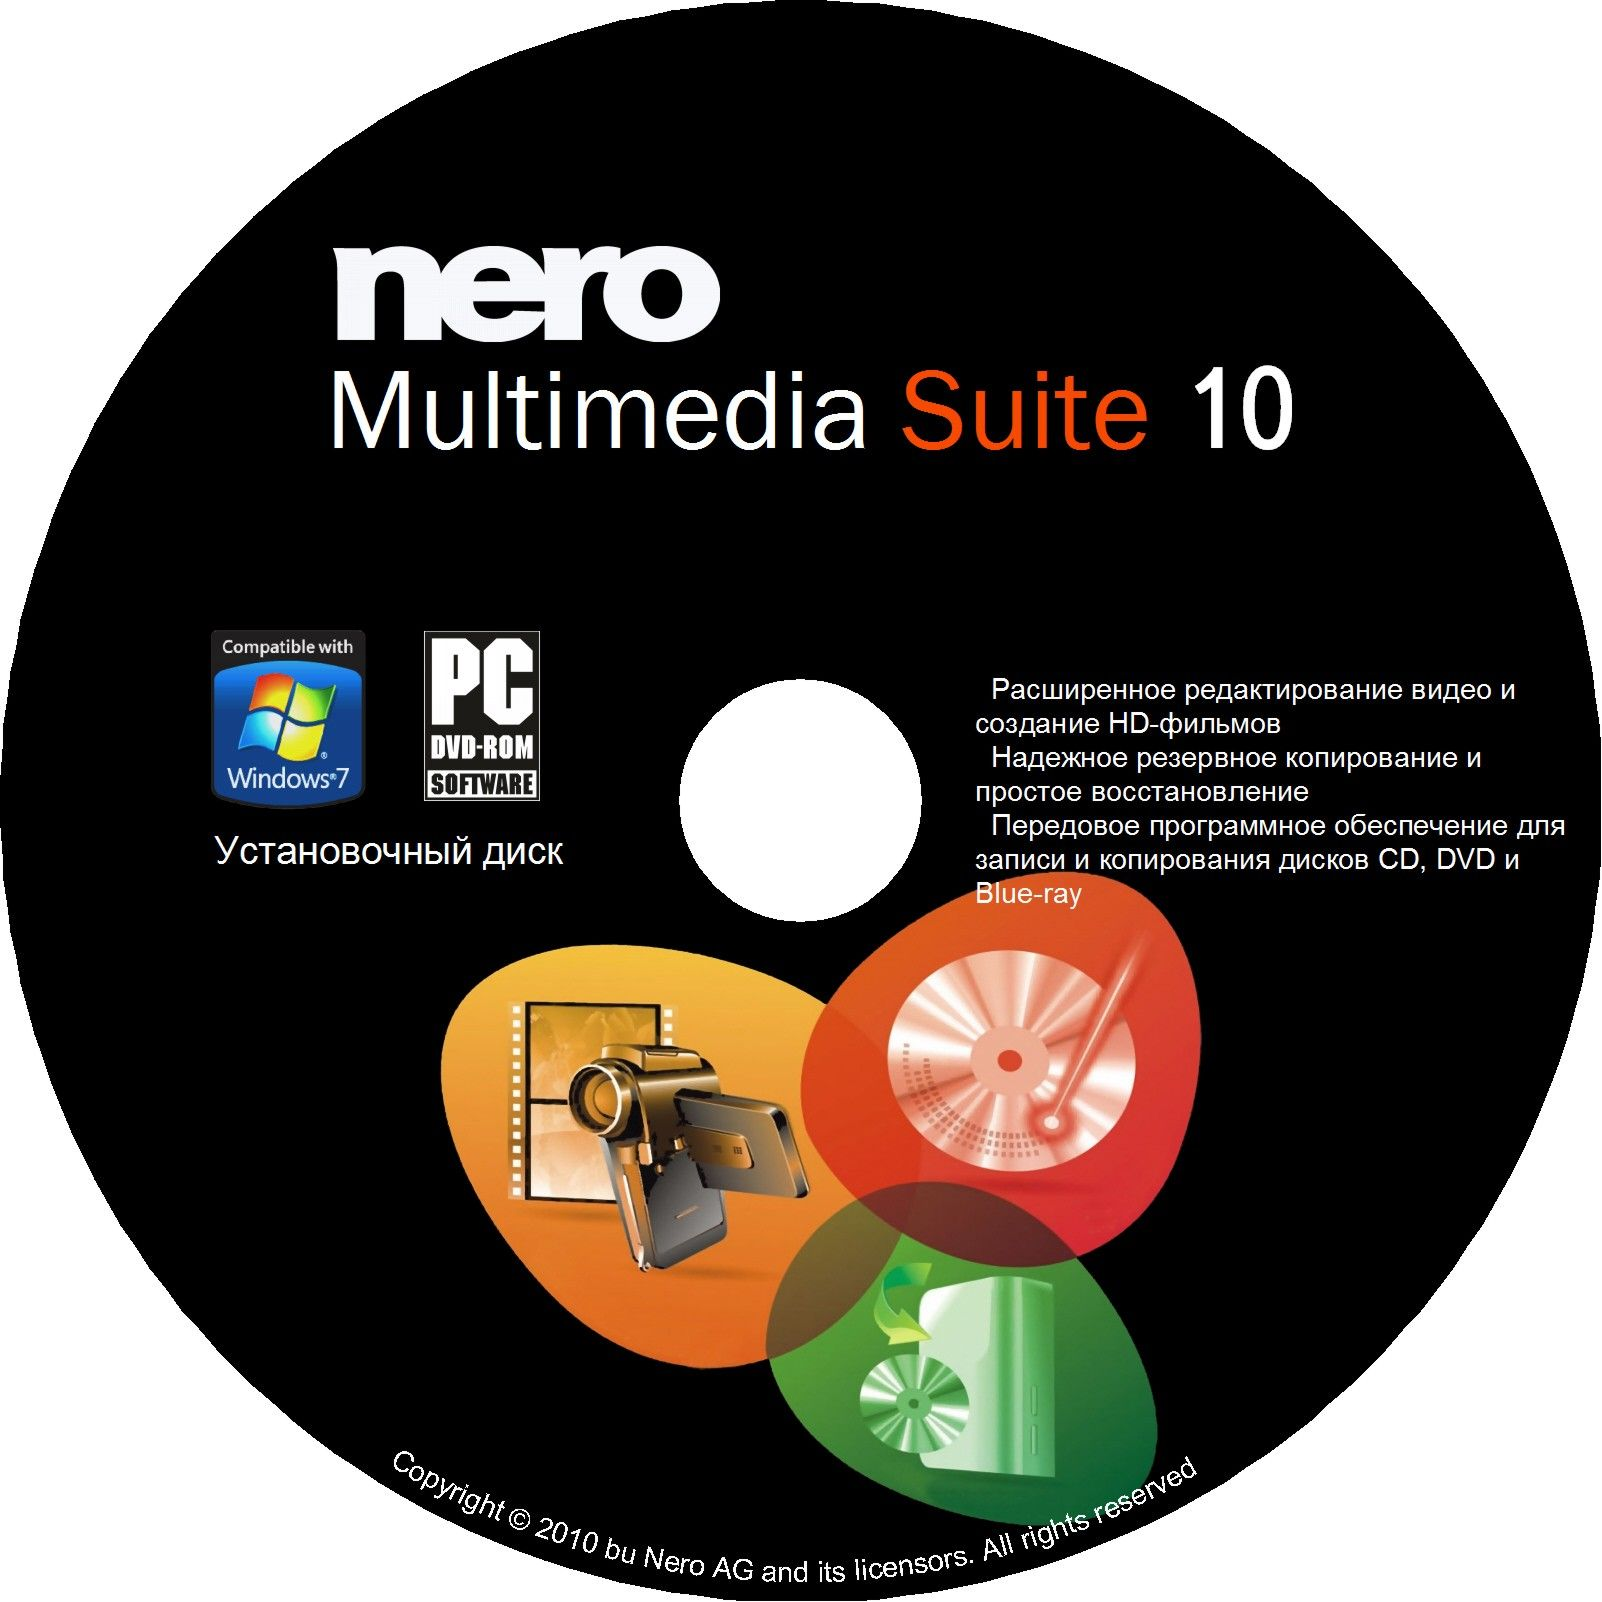 database systems design implementation and management 9th edition rh za pinterest com Nero Multimedia Suite 10 Serial Key nero multimedia suite 10 manual